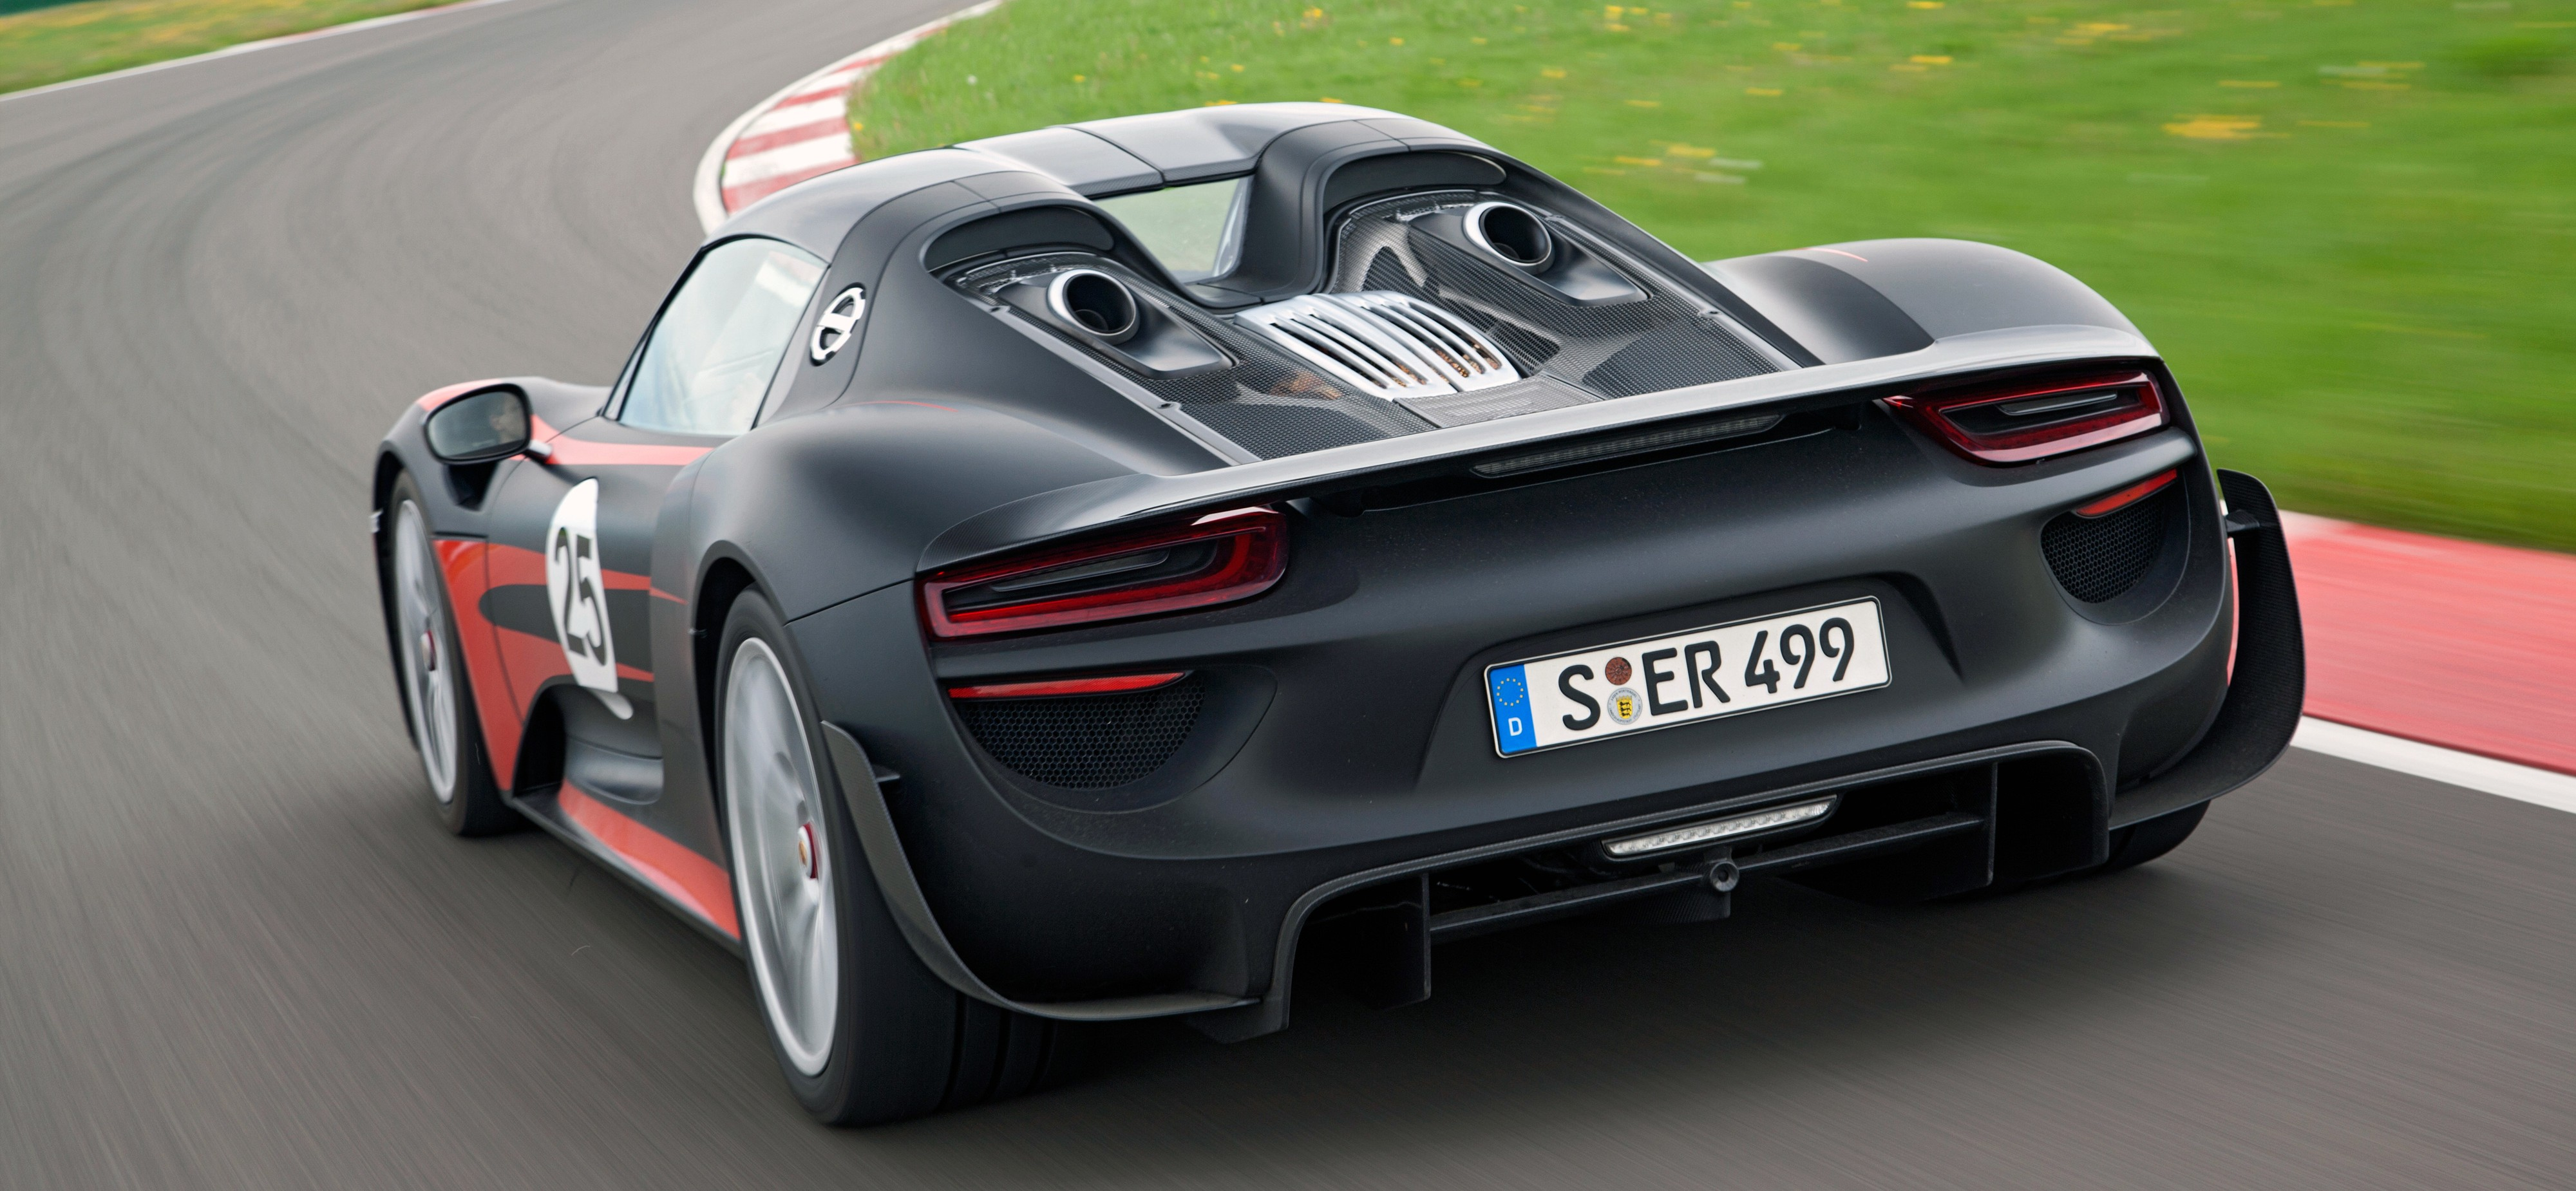 porsche 918 spyder 887 hp 1 275 nm 340 km h image 175025. Black Bedroom Furniture Sets. Home Design Ideas